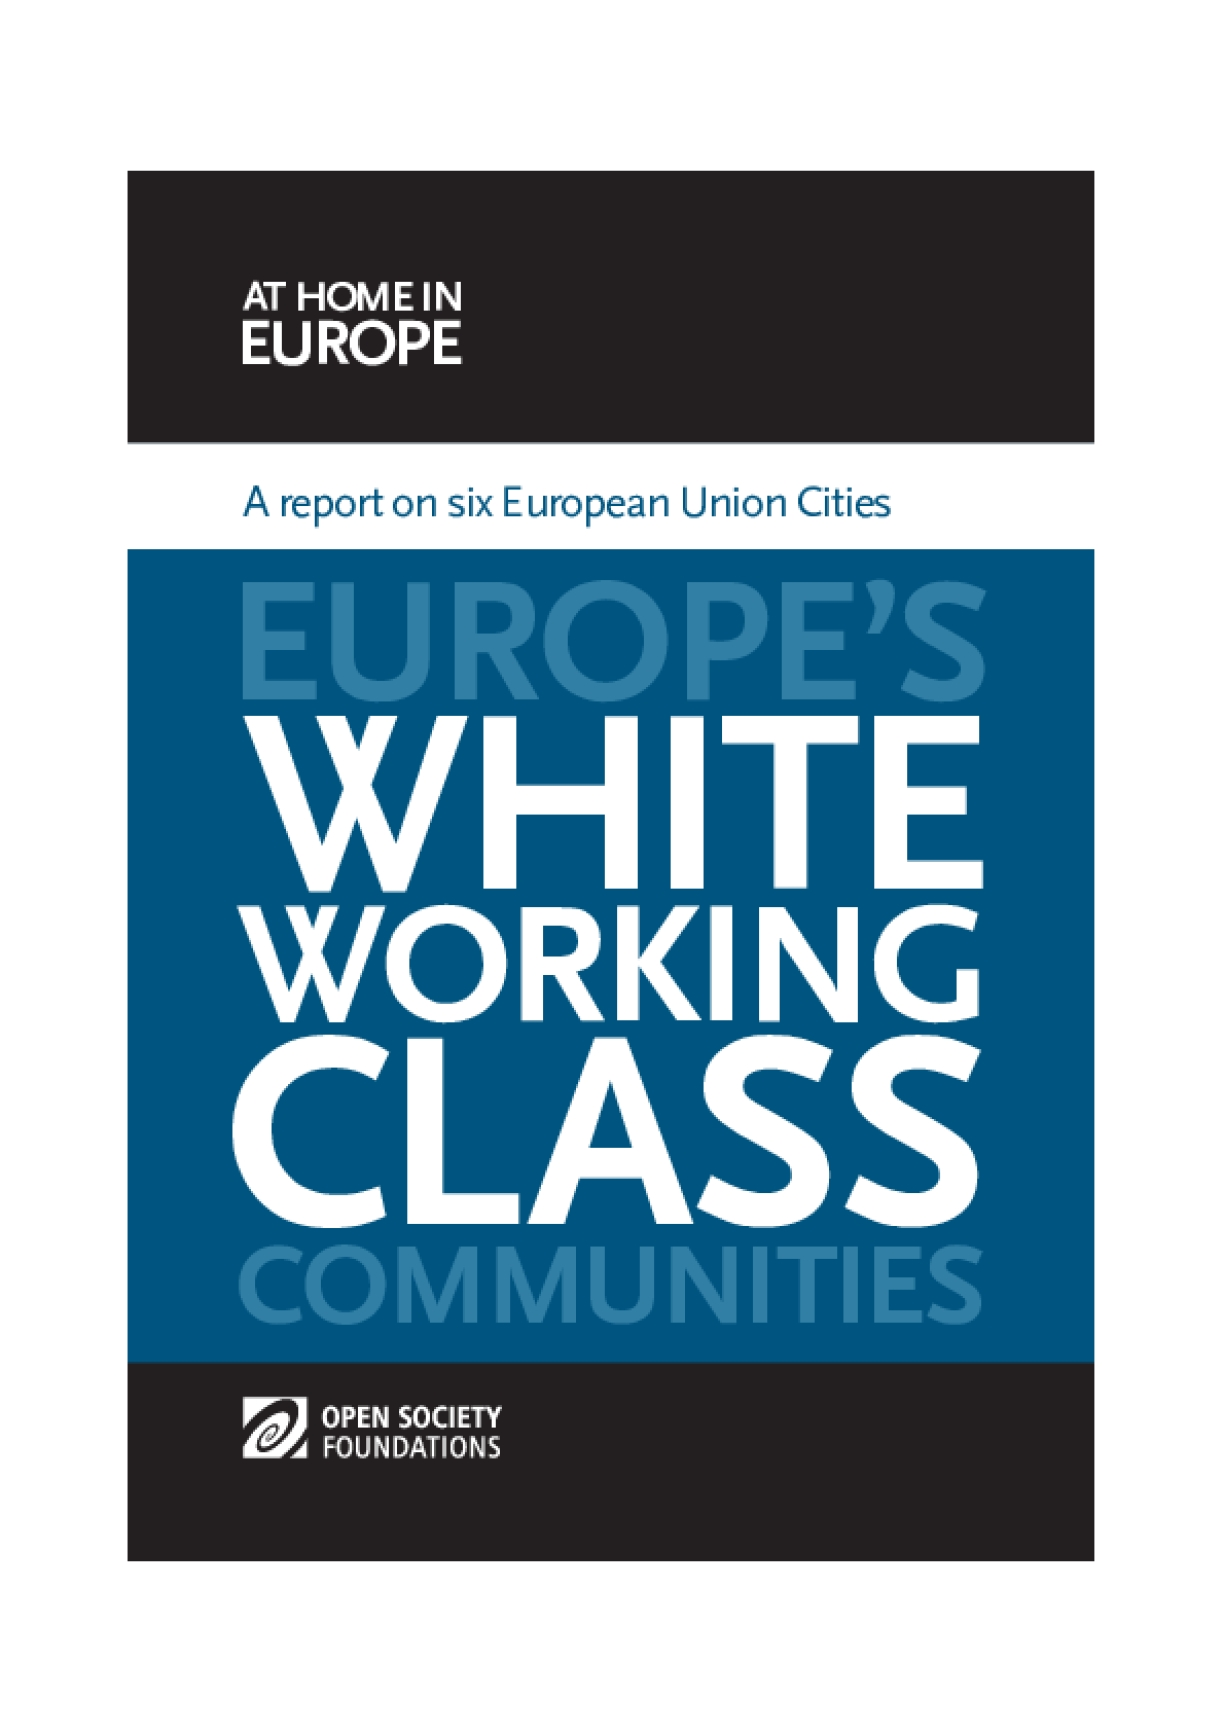 Europe's White Working Class Communities: A Report on Six EU Cities